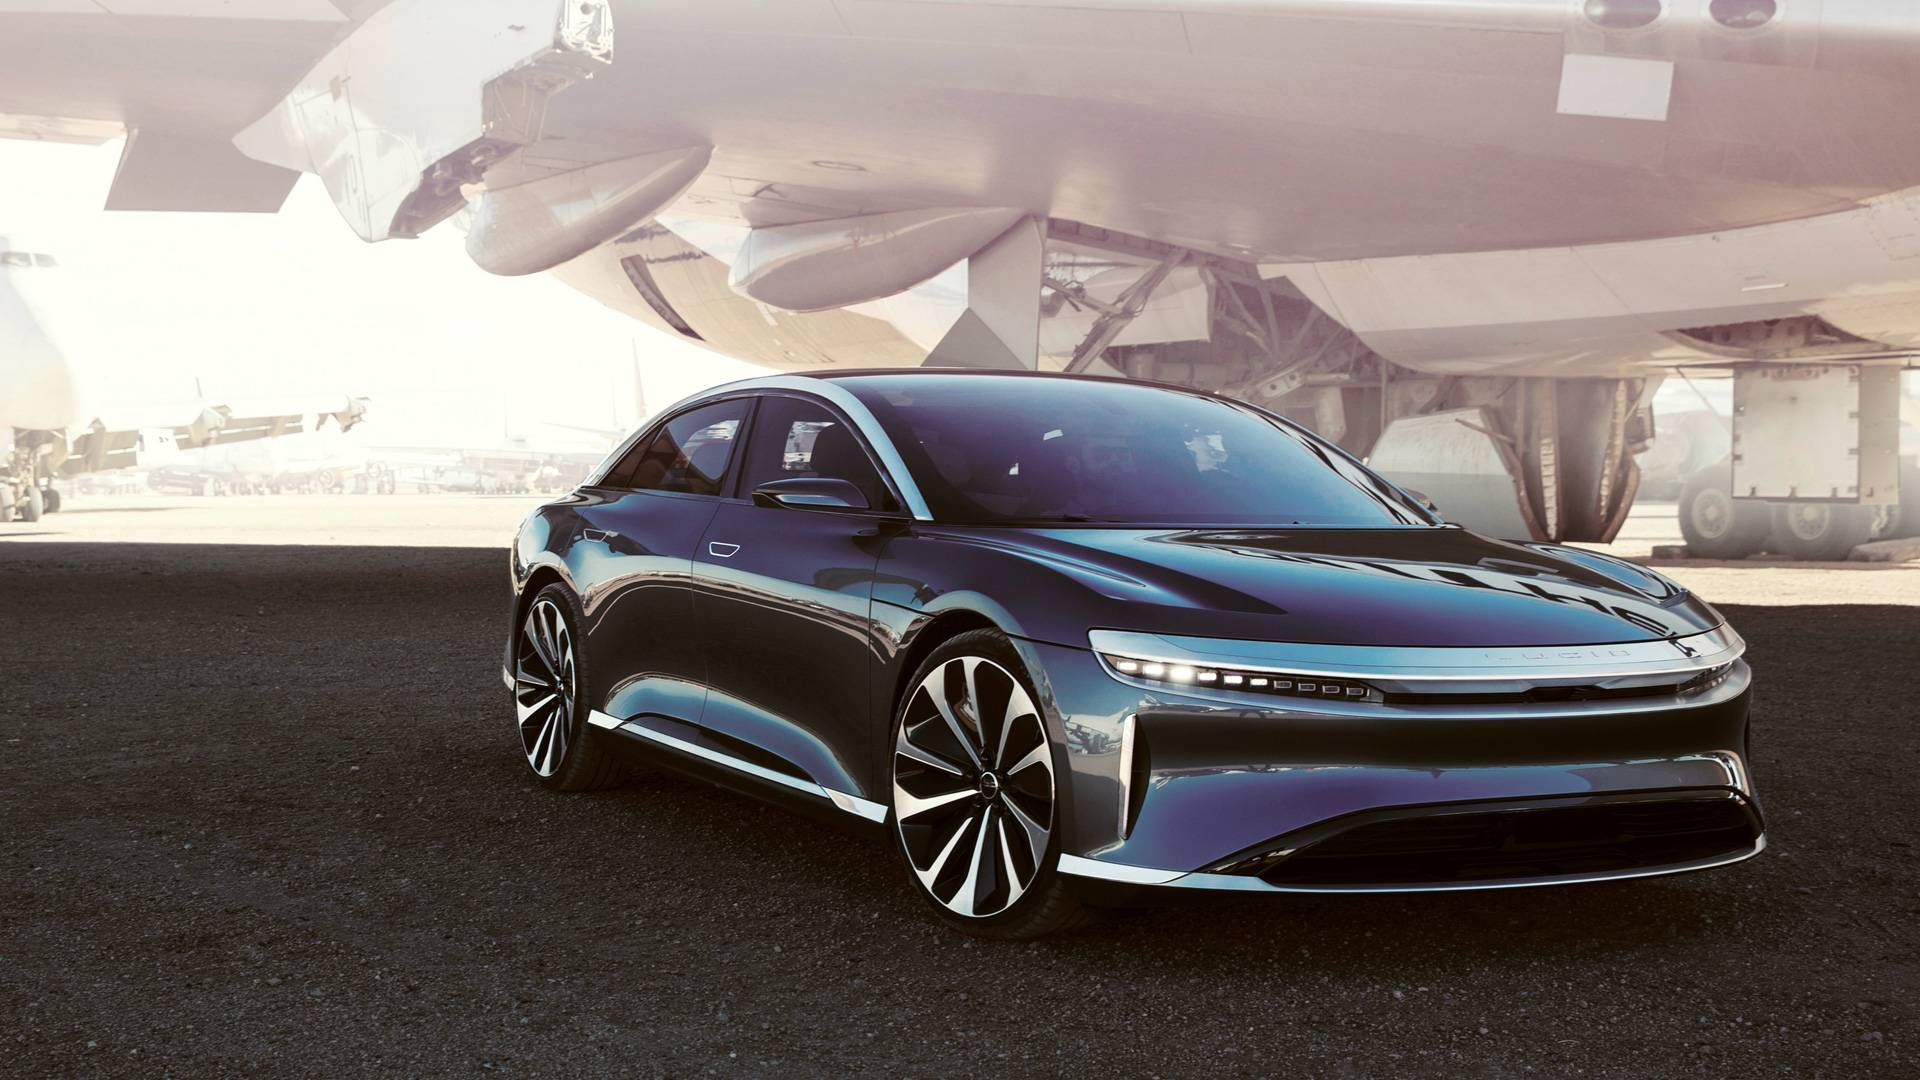 Lucid Air News and Reviews | InsideEVs